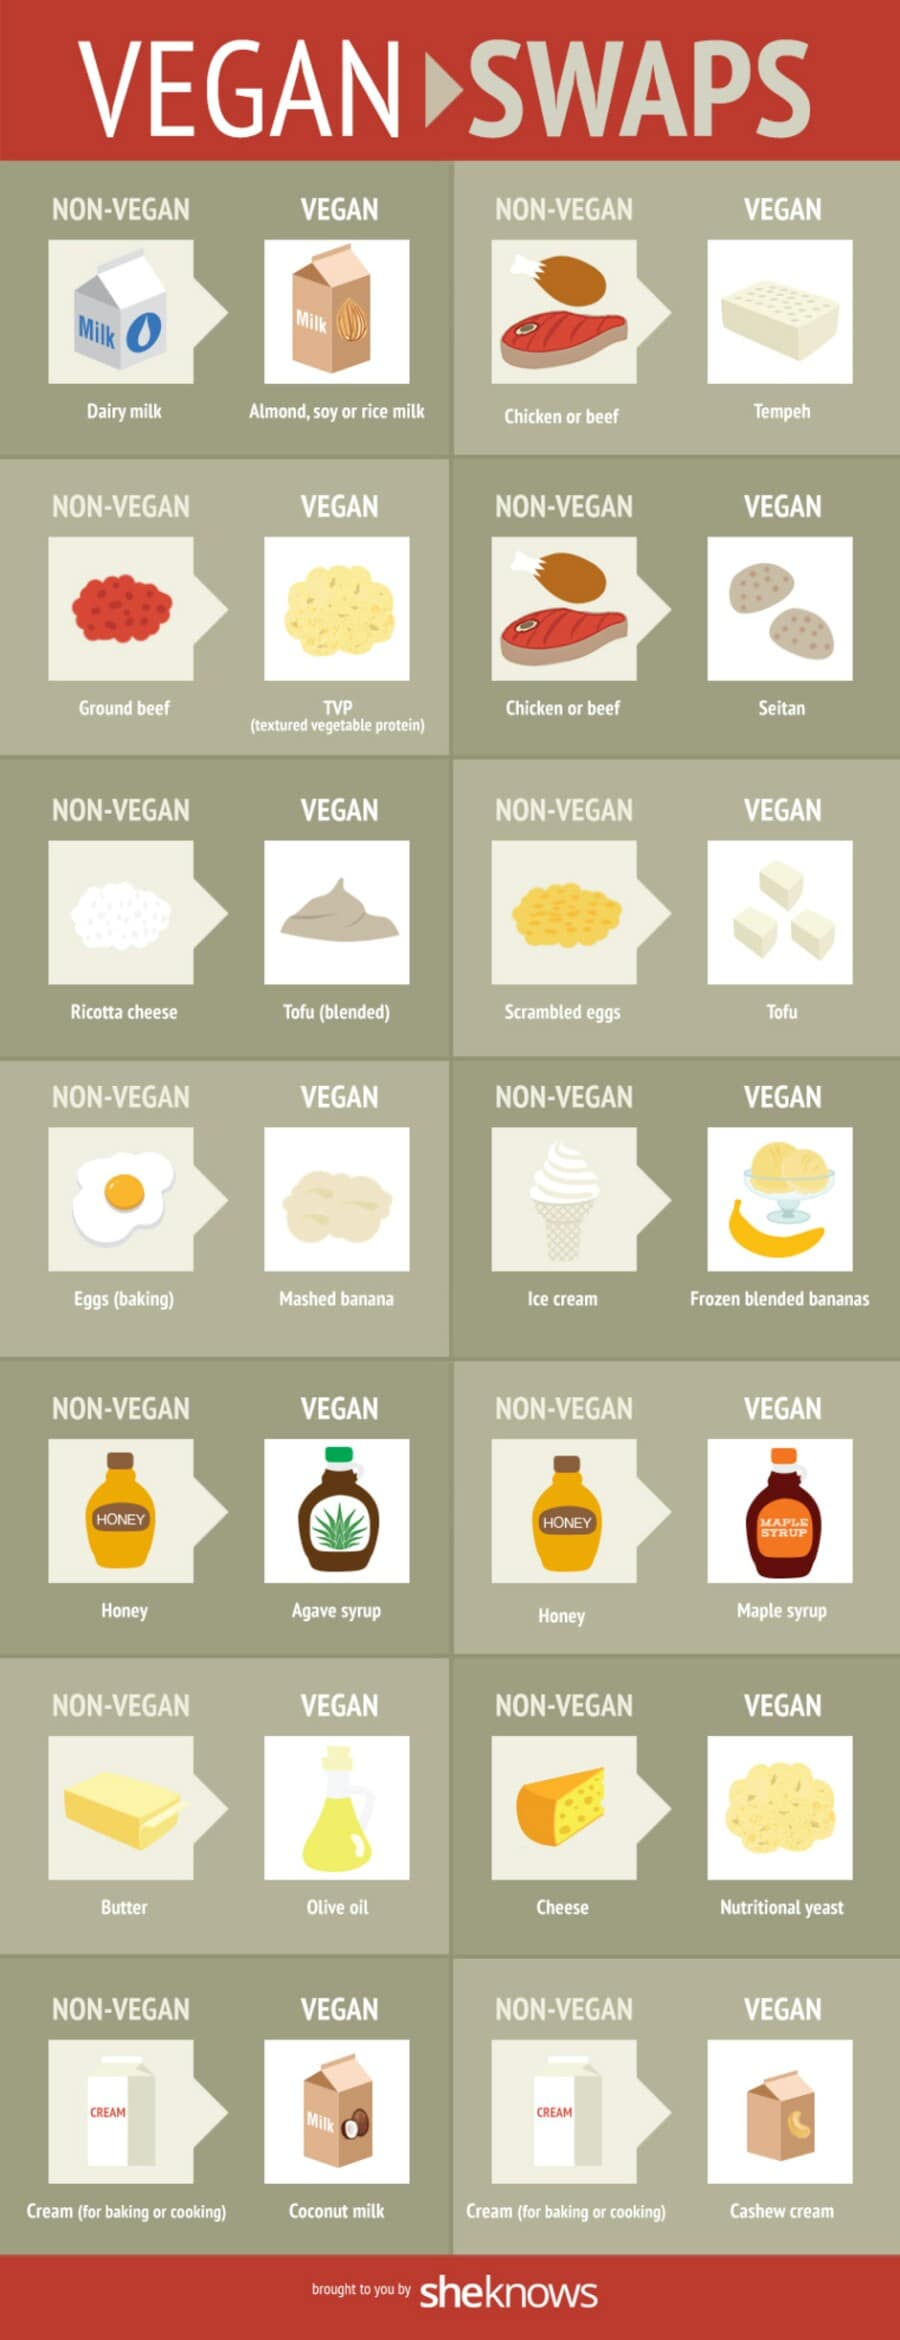 Discover simple vegan food substitutions.